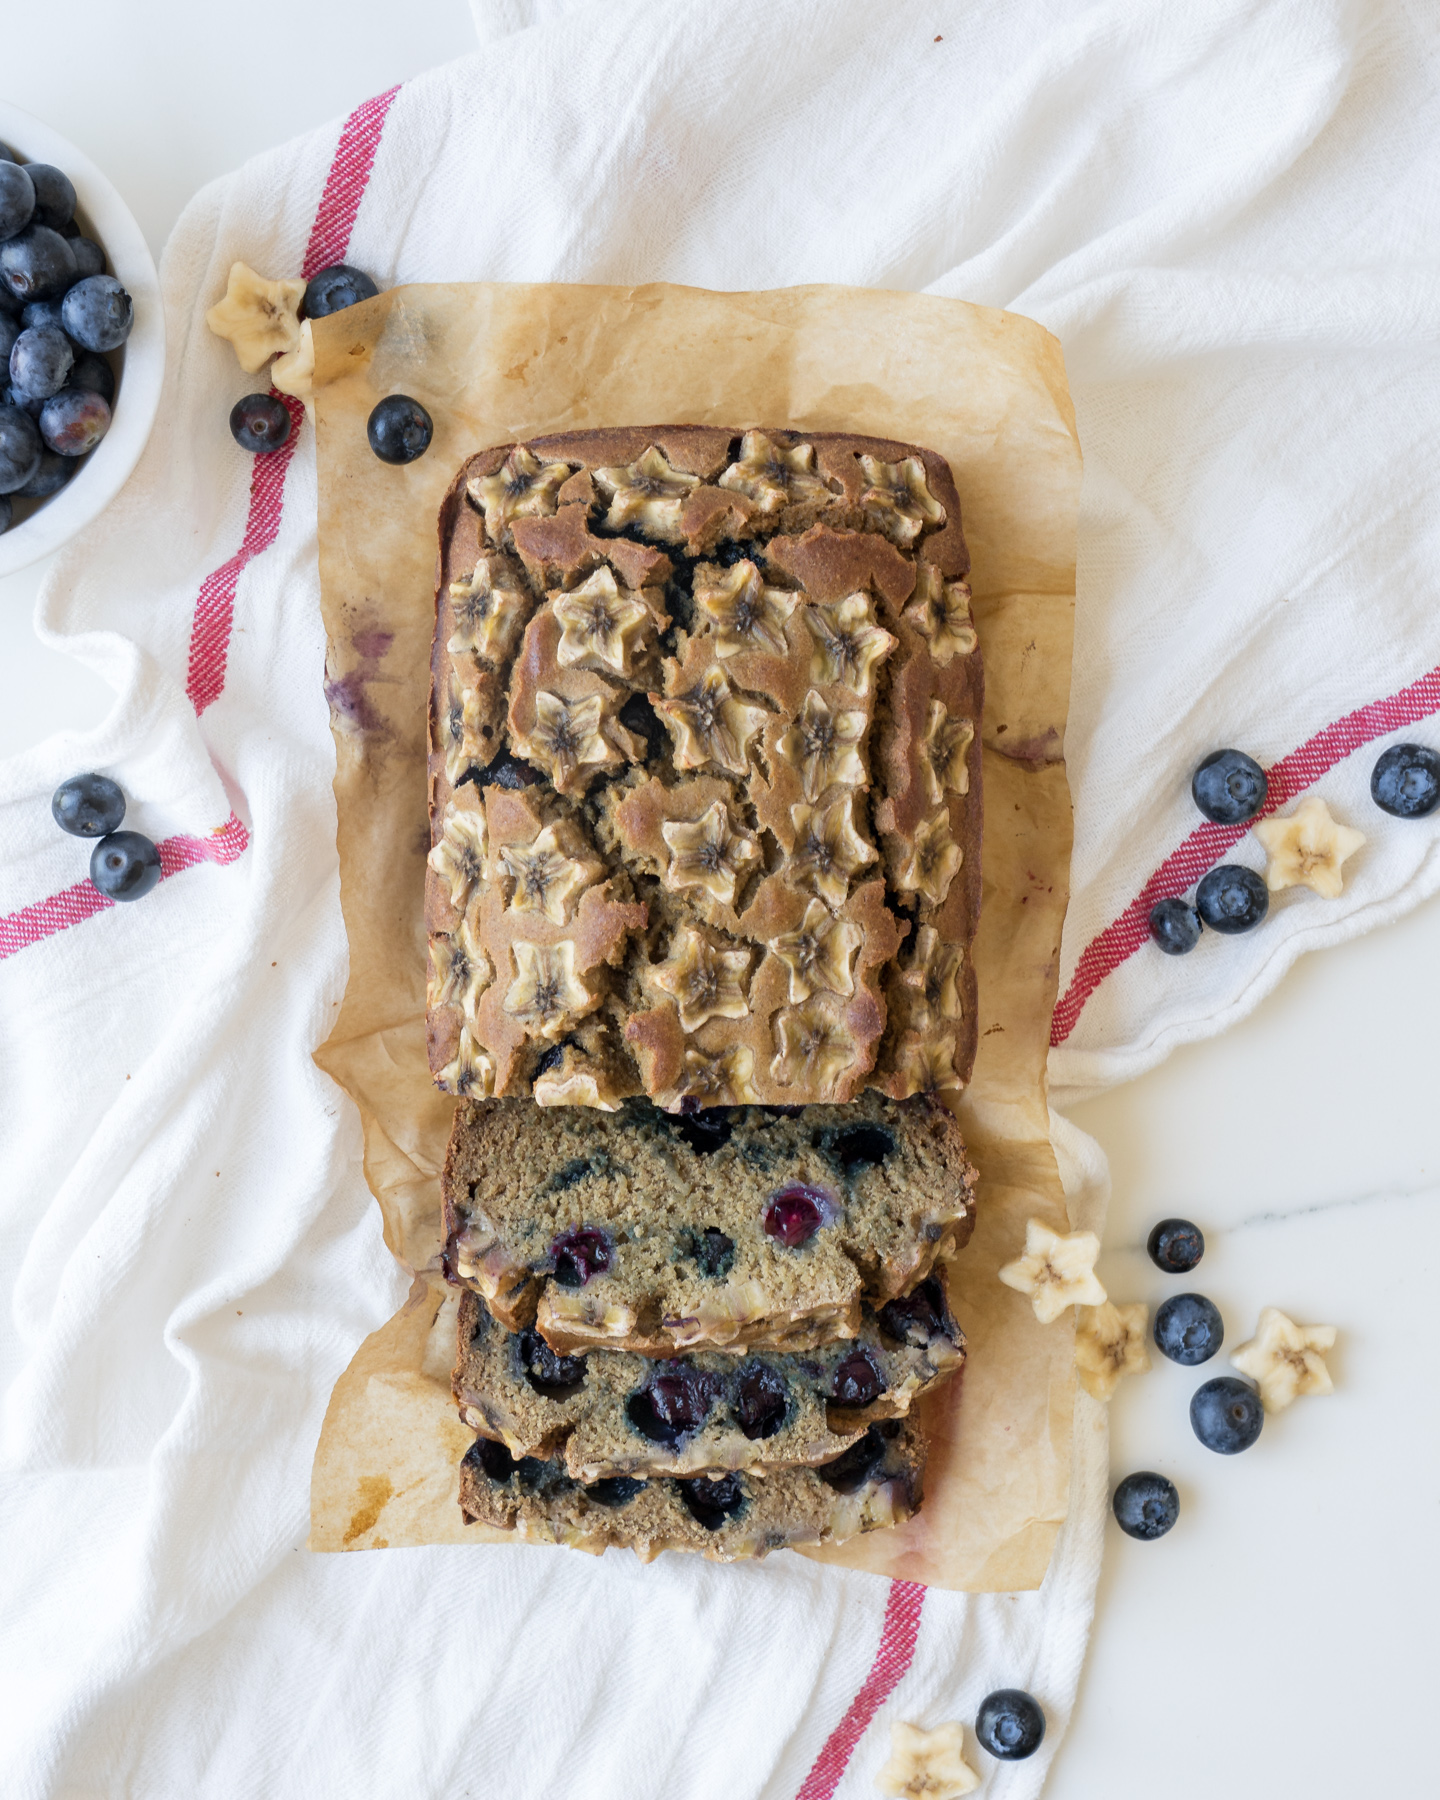 Star-Spangled Blueberry Banana Bread, Brunchographers